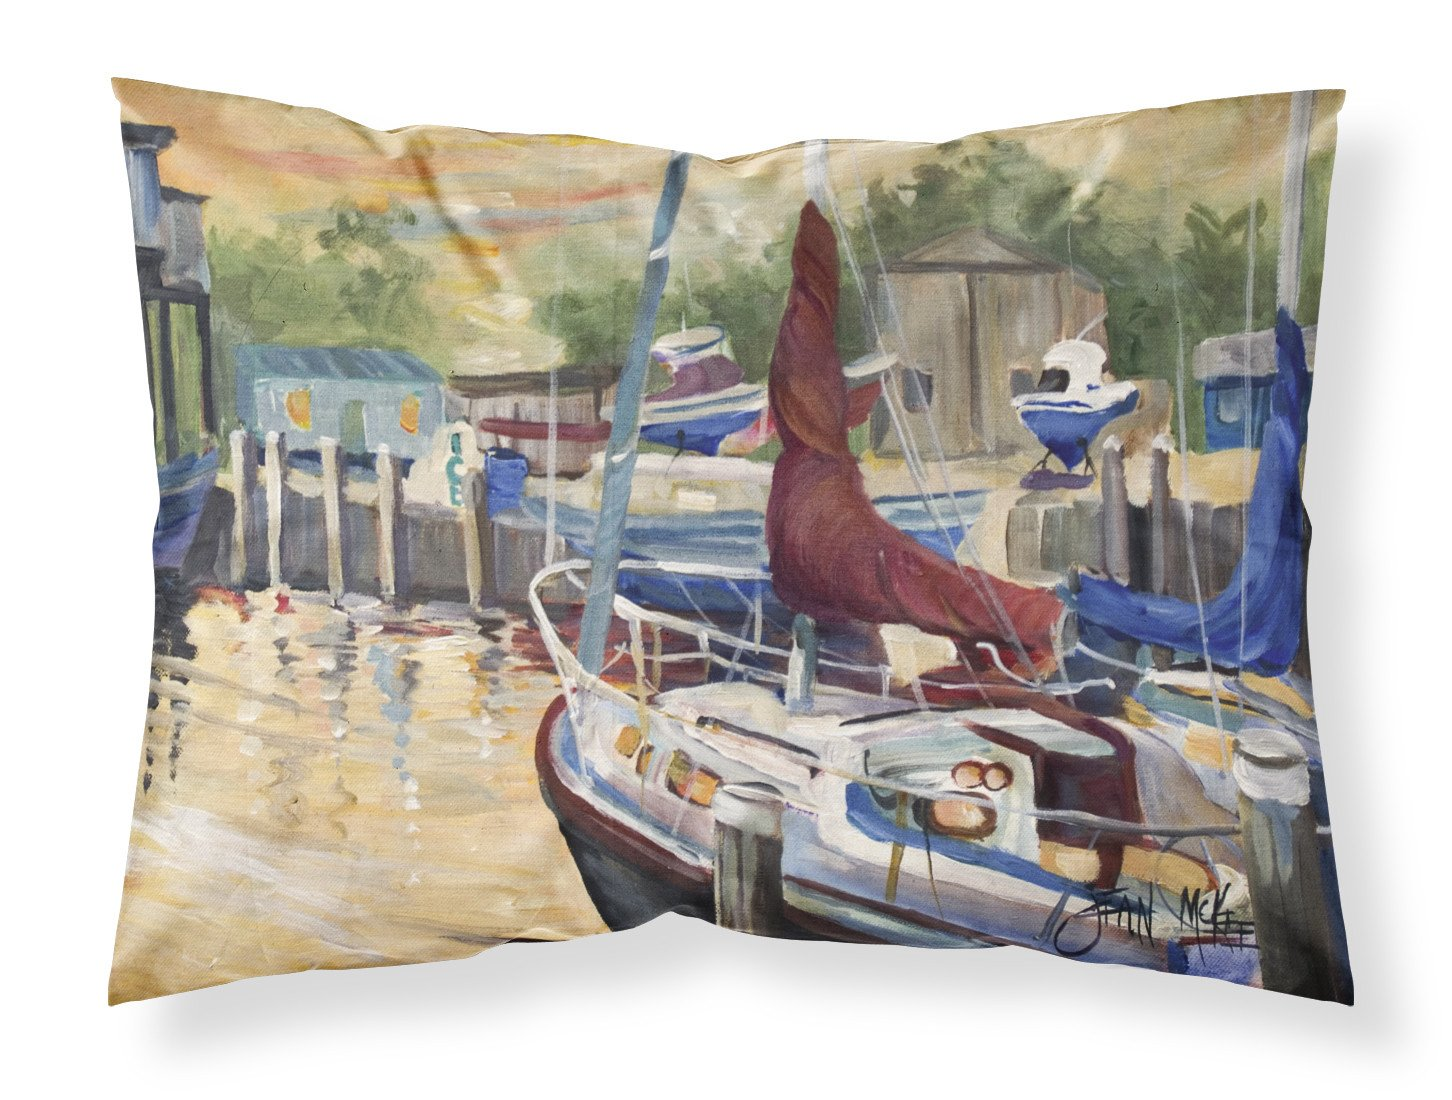 Buy this New Sunset Bay Sailboat Fabric Standard Pillowcase JMK1083PILLOWCASE